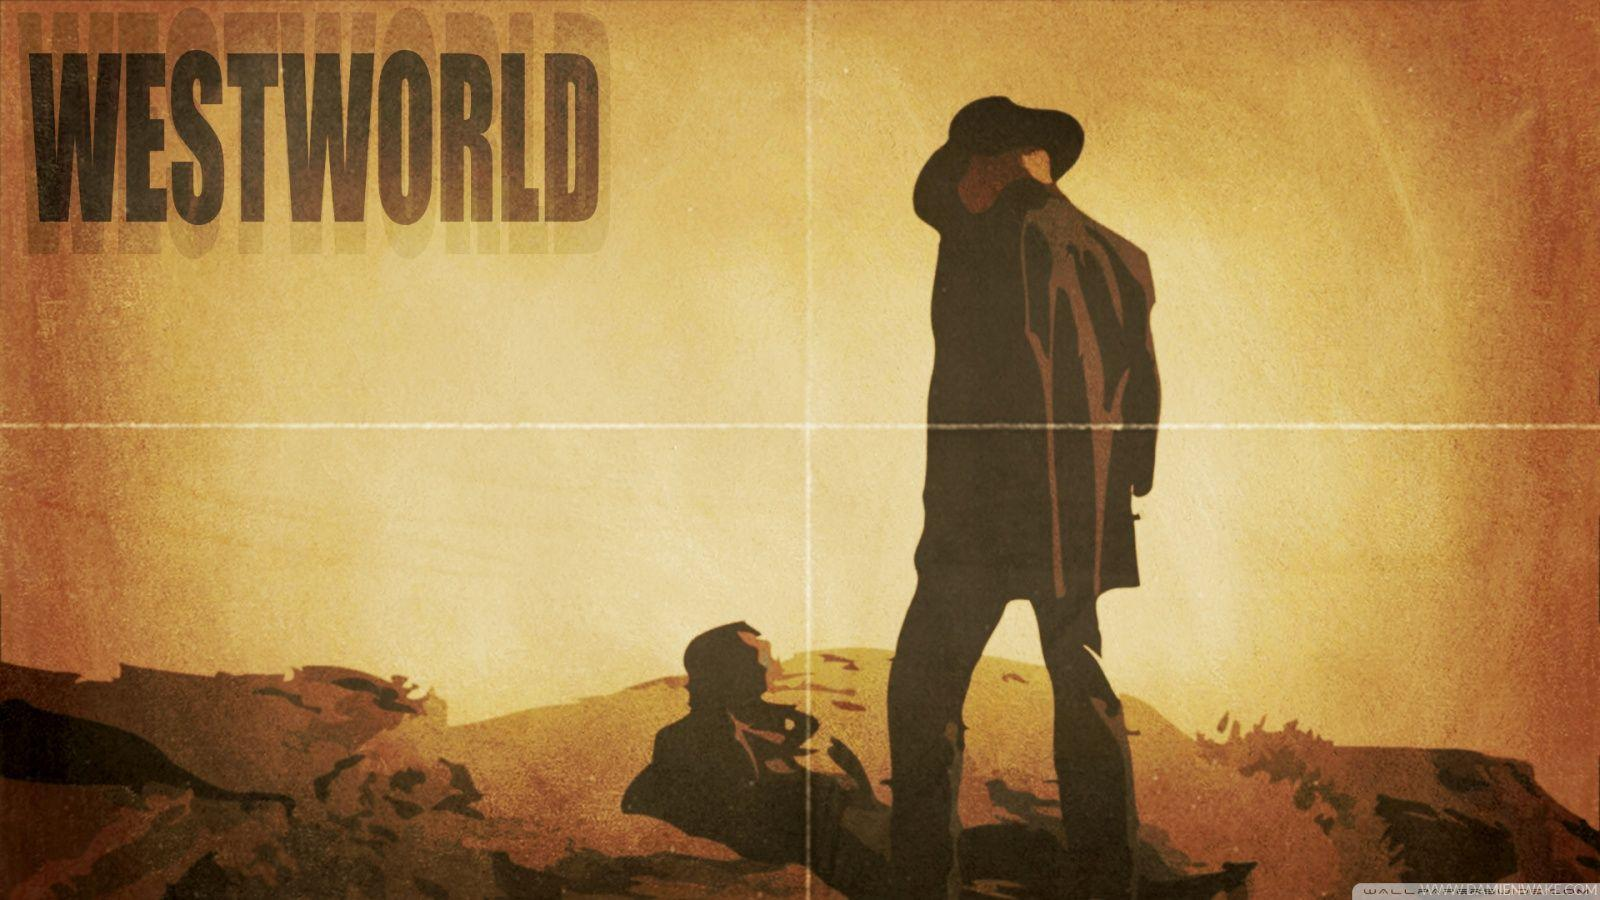 Westworld HD desktop wallpapers : High Definition : Mobile